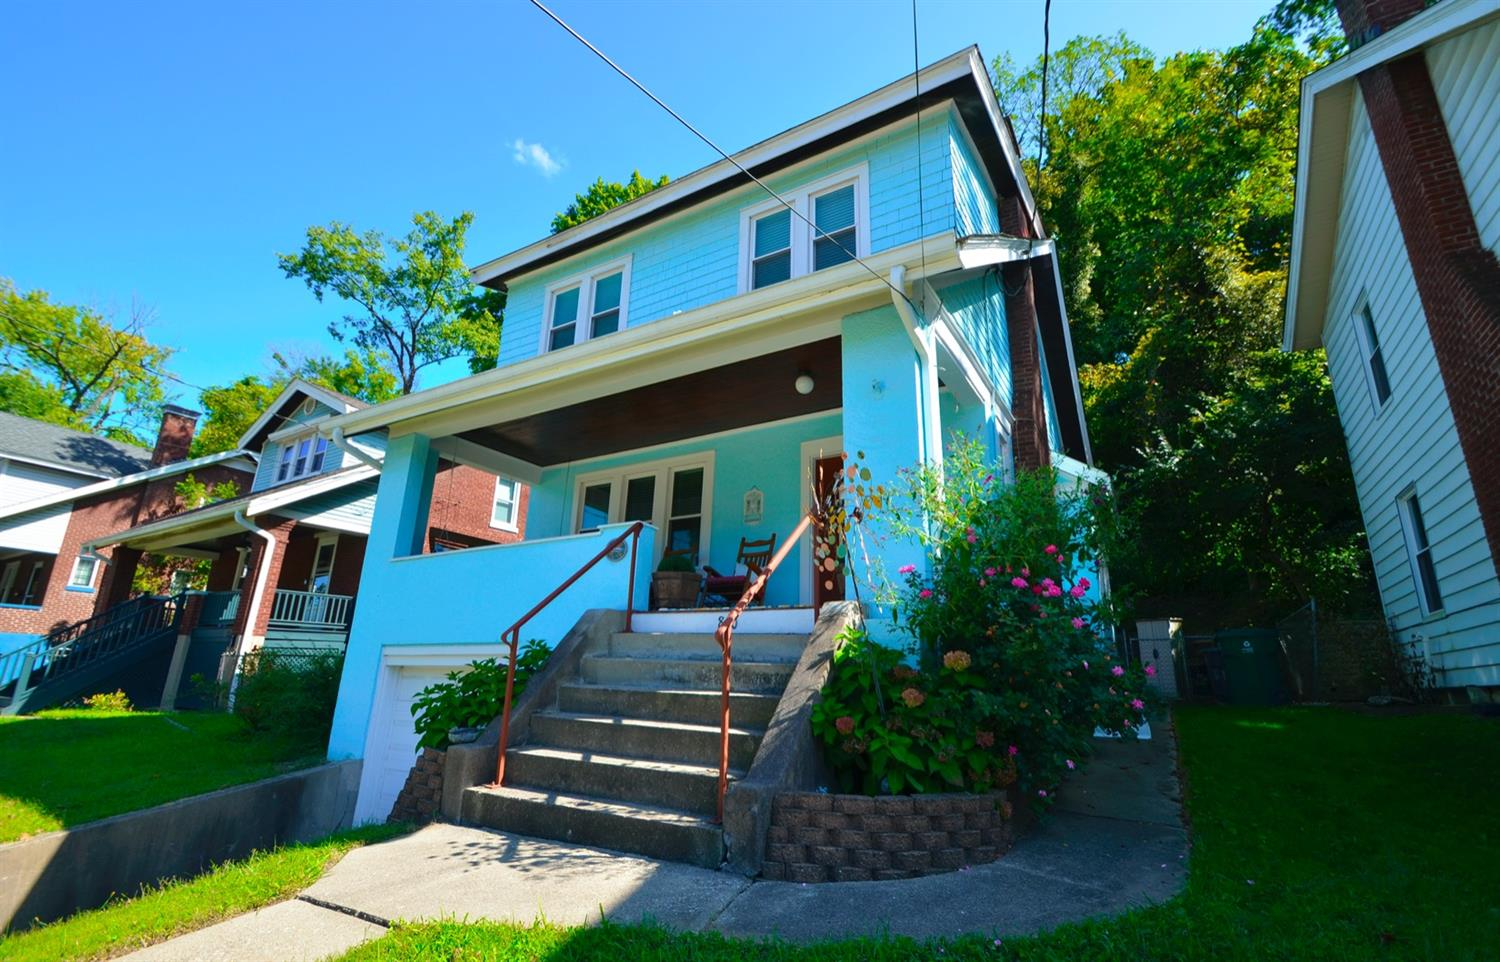 Check out this adorable Craftsman Bungalow in